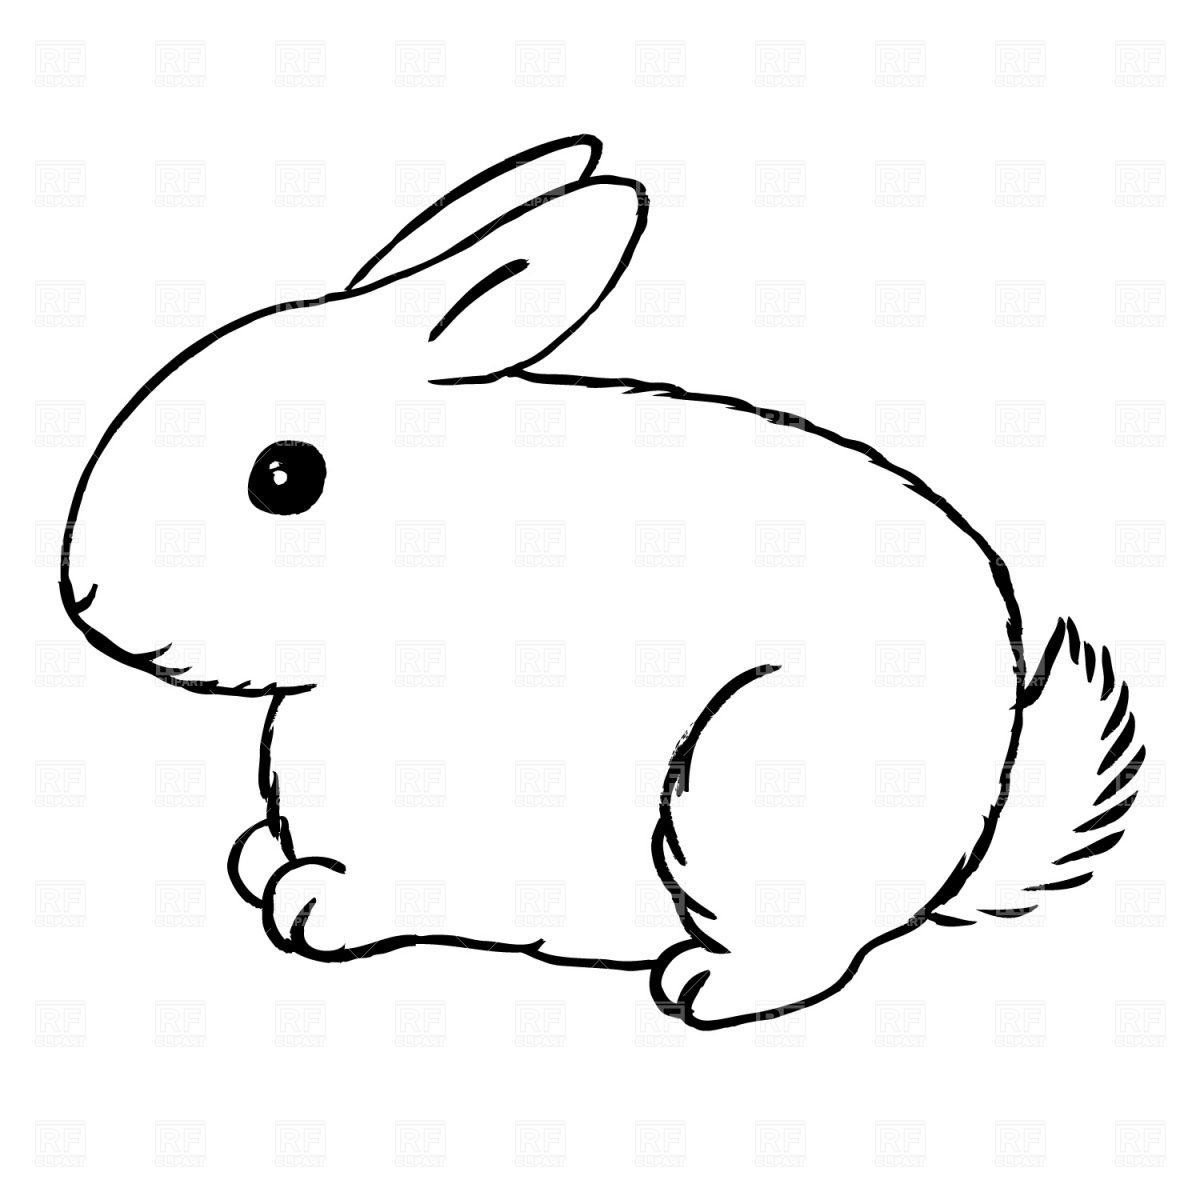 medium resolution of drawings of rabbits and bunnies use these free images for your websites art projects reports and